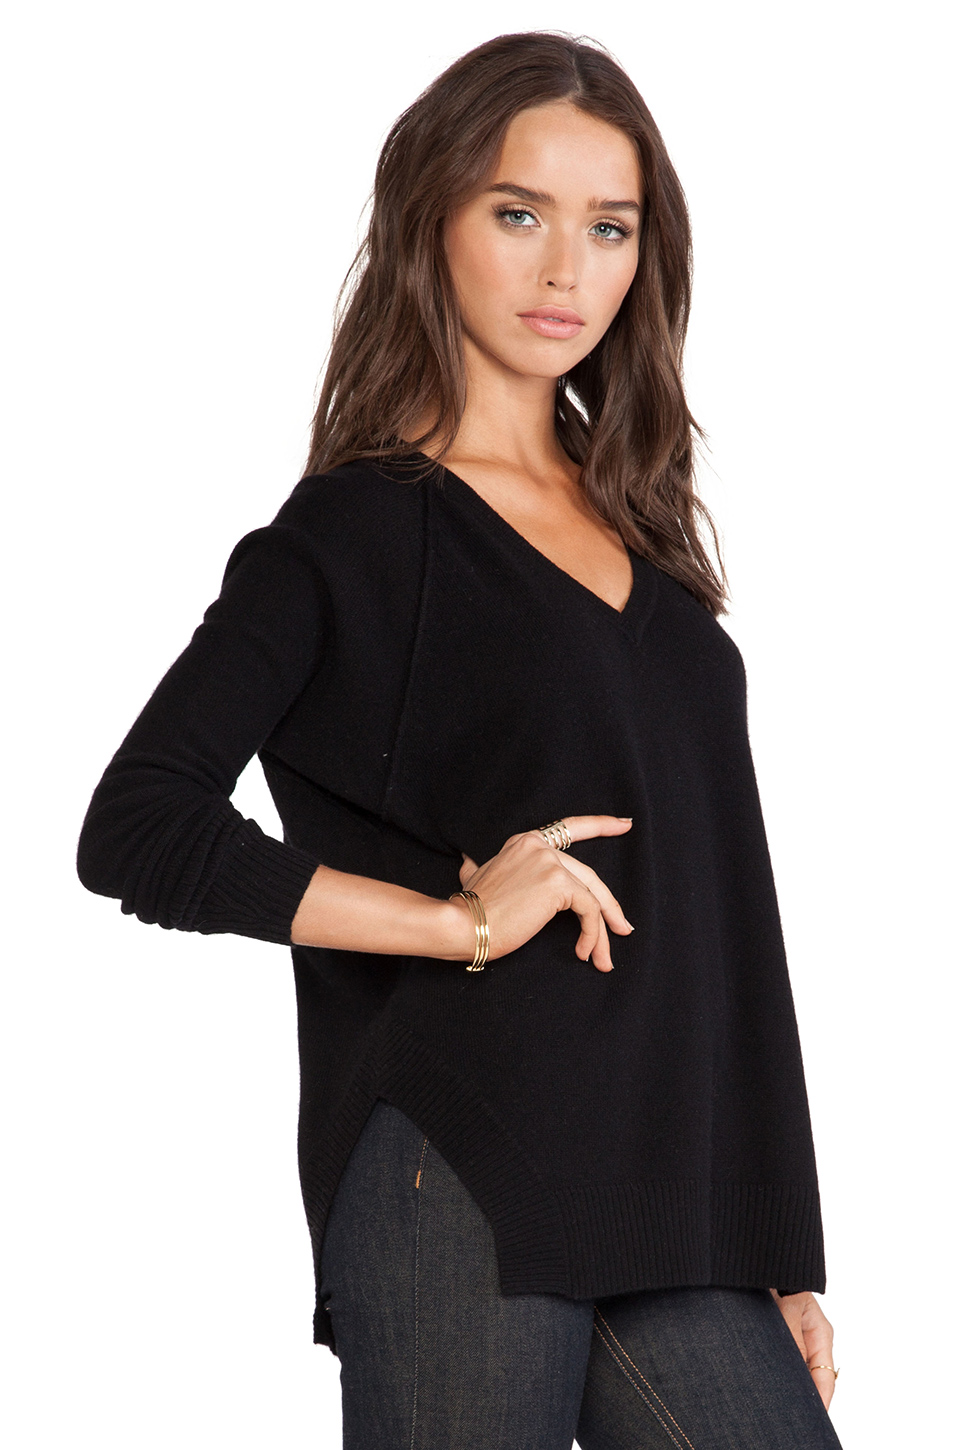 Kingsley cashmere v neck sweater in black from revolveclothing.com